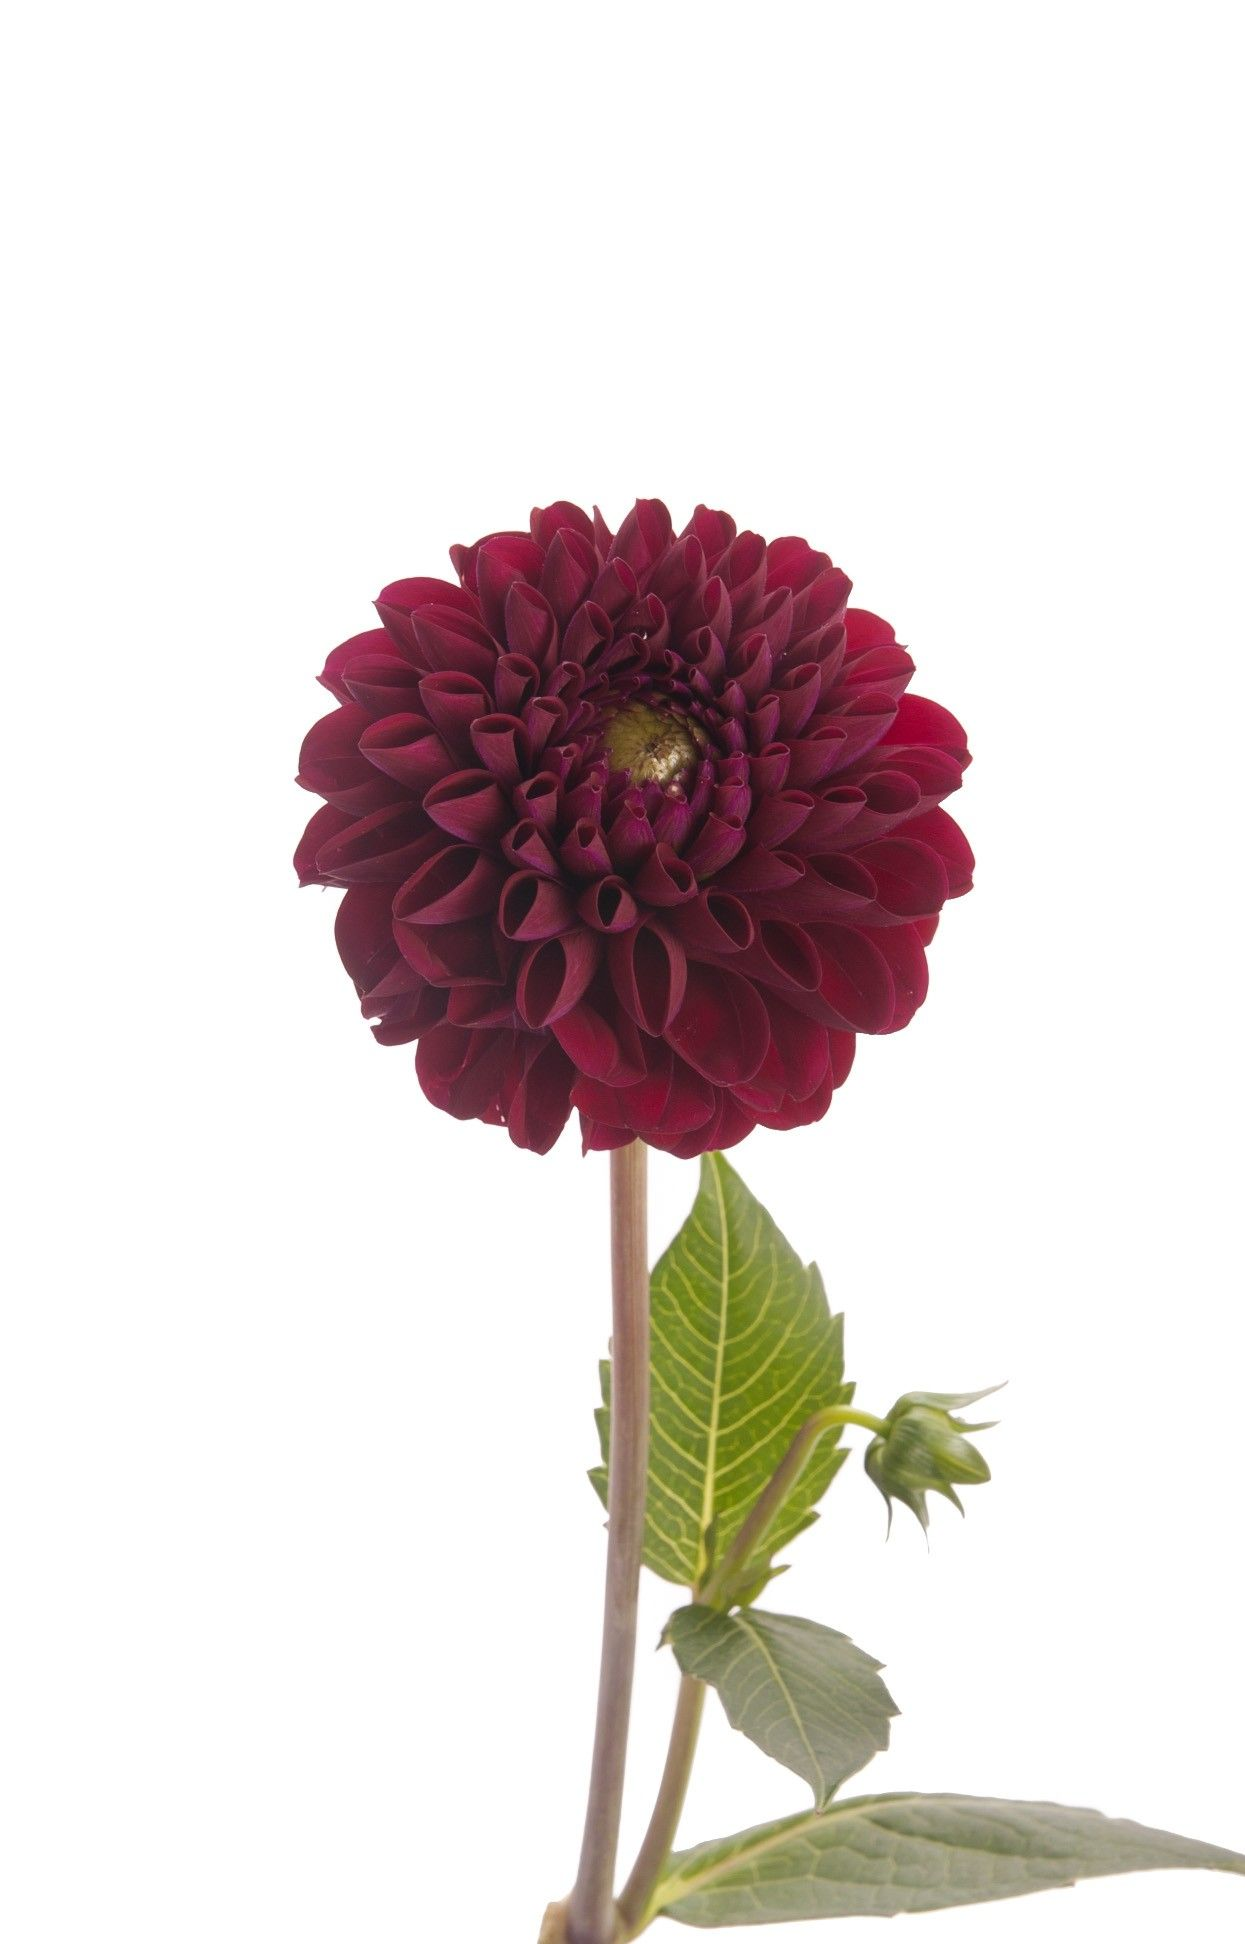 Burgundy Dahlia Flower Dahlias Types Of Flowers Flower Muse Burgundy Dahlia Types Of Flowers Wedding Flower Types